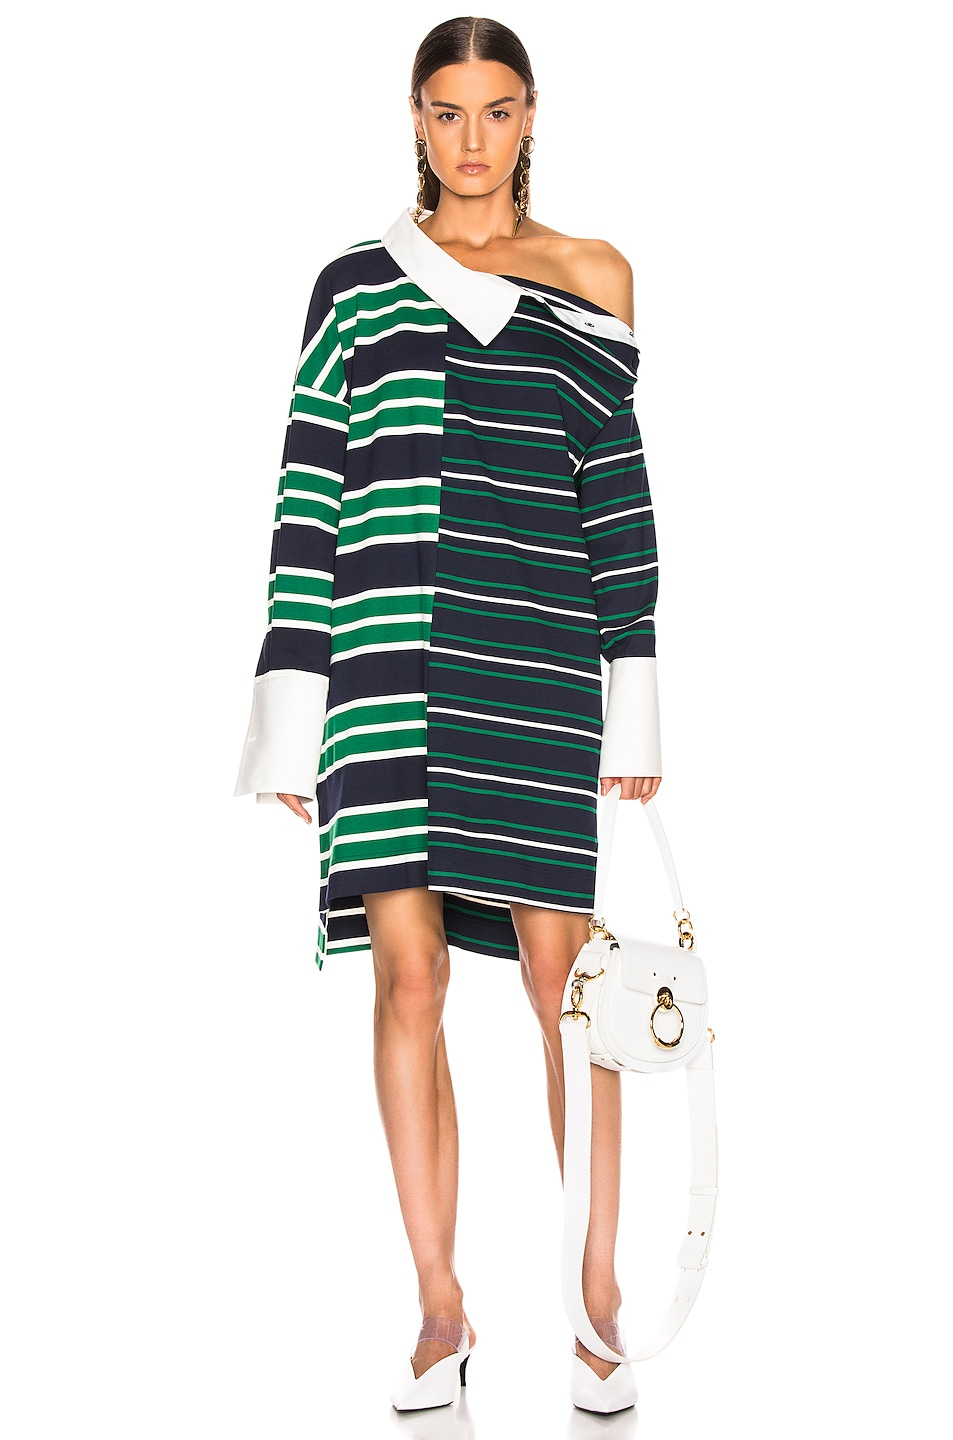 Image 1 of Monse Striped Shifted Rugby Dress in Navy, Green & Ivory